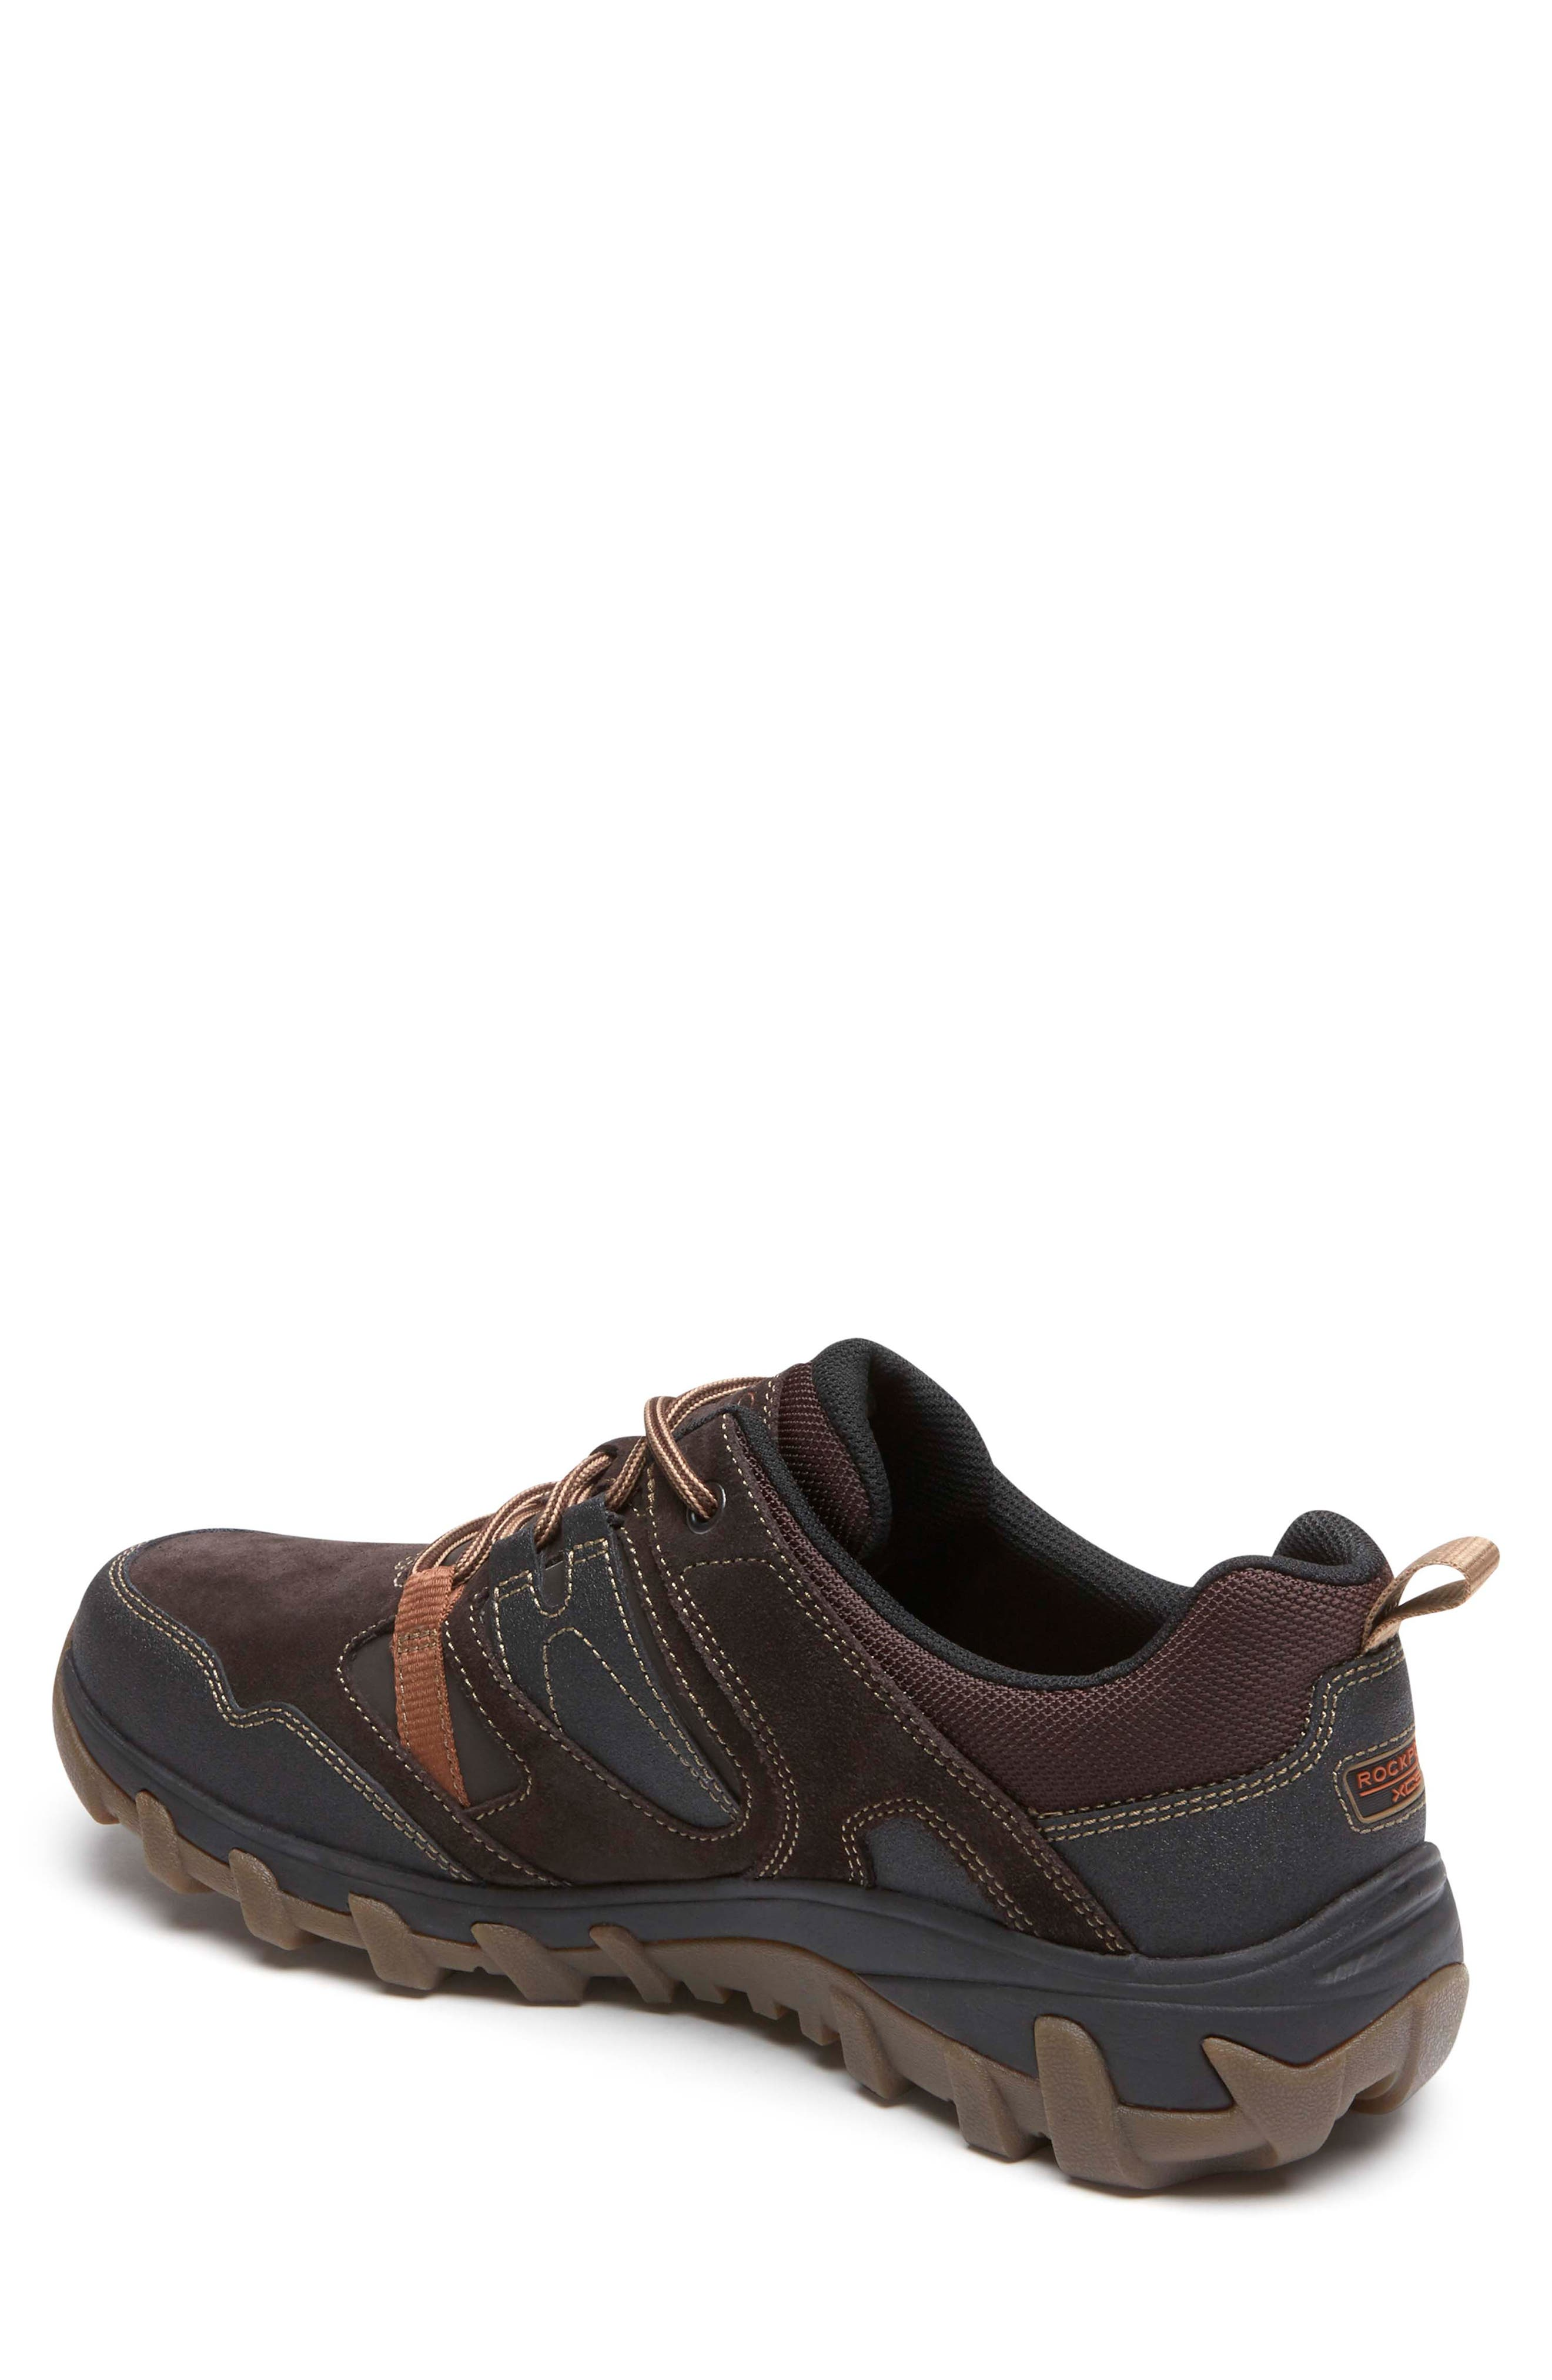 Cold Springs Plus Lace-Up Sneaker,                             Alternate thumbnail 2, color,                             DARK BROWN LEATHER